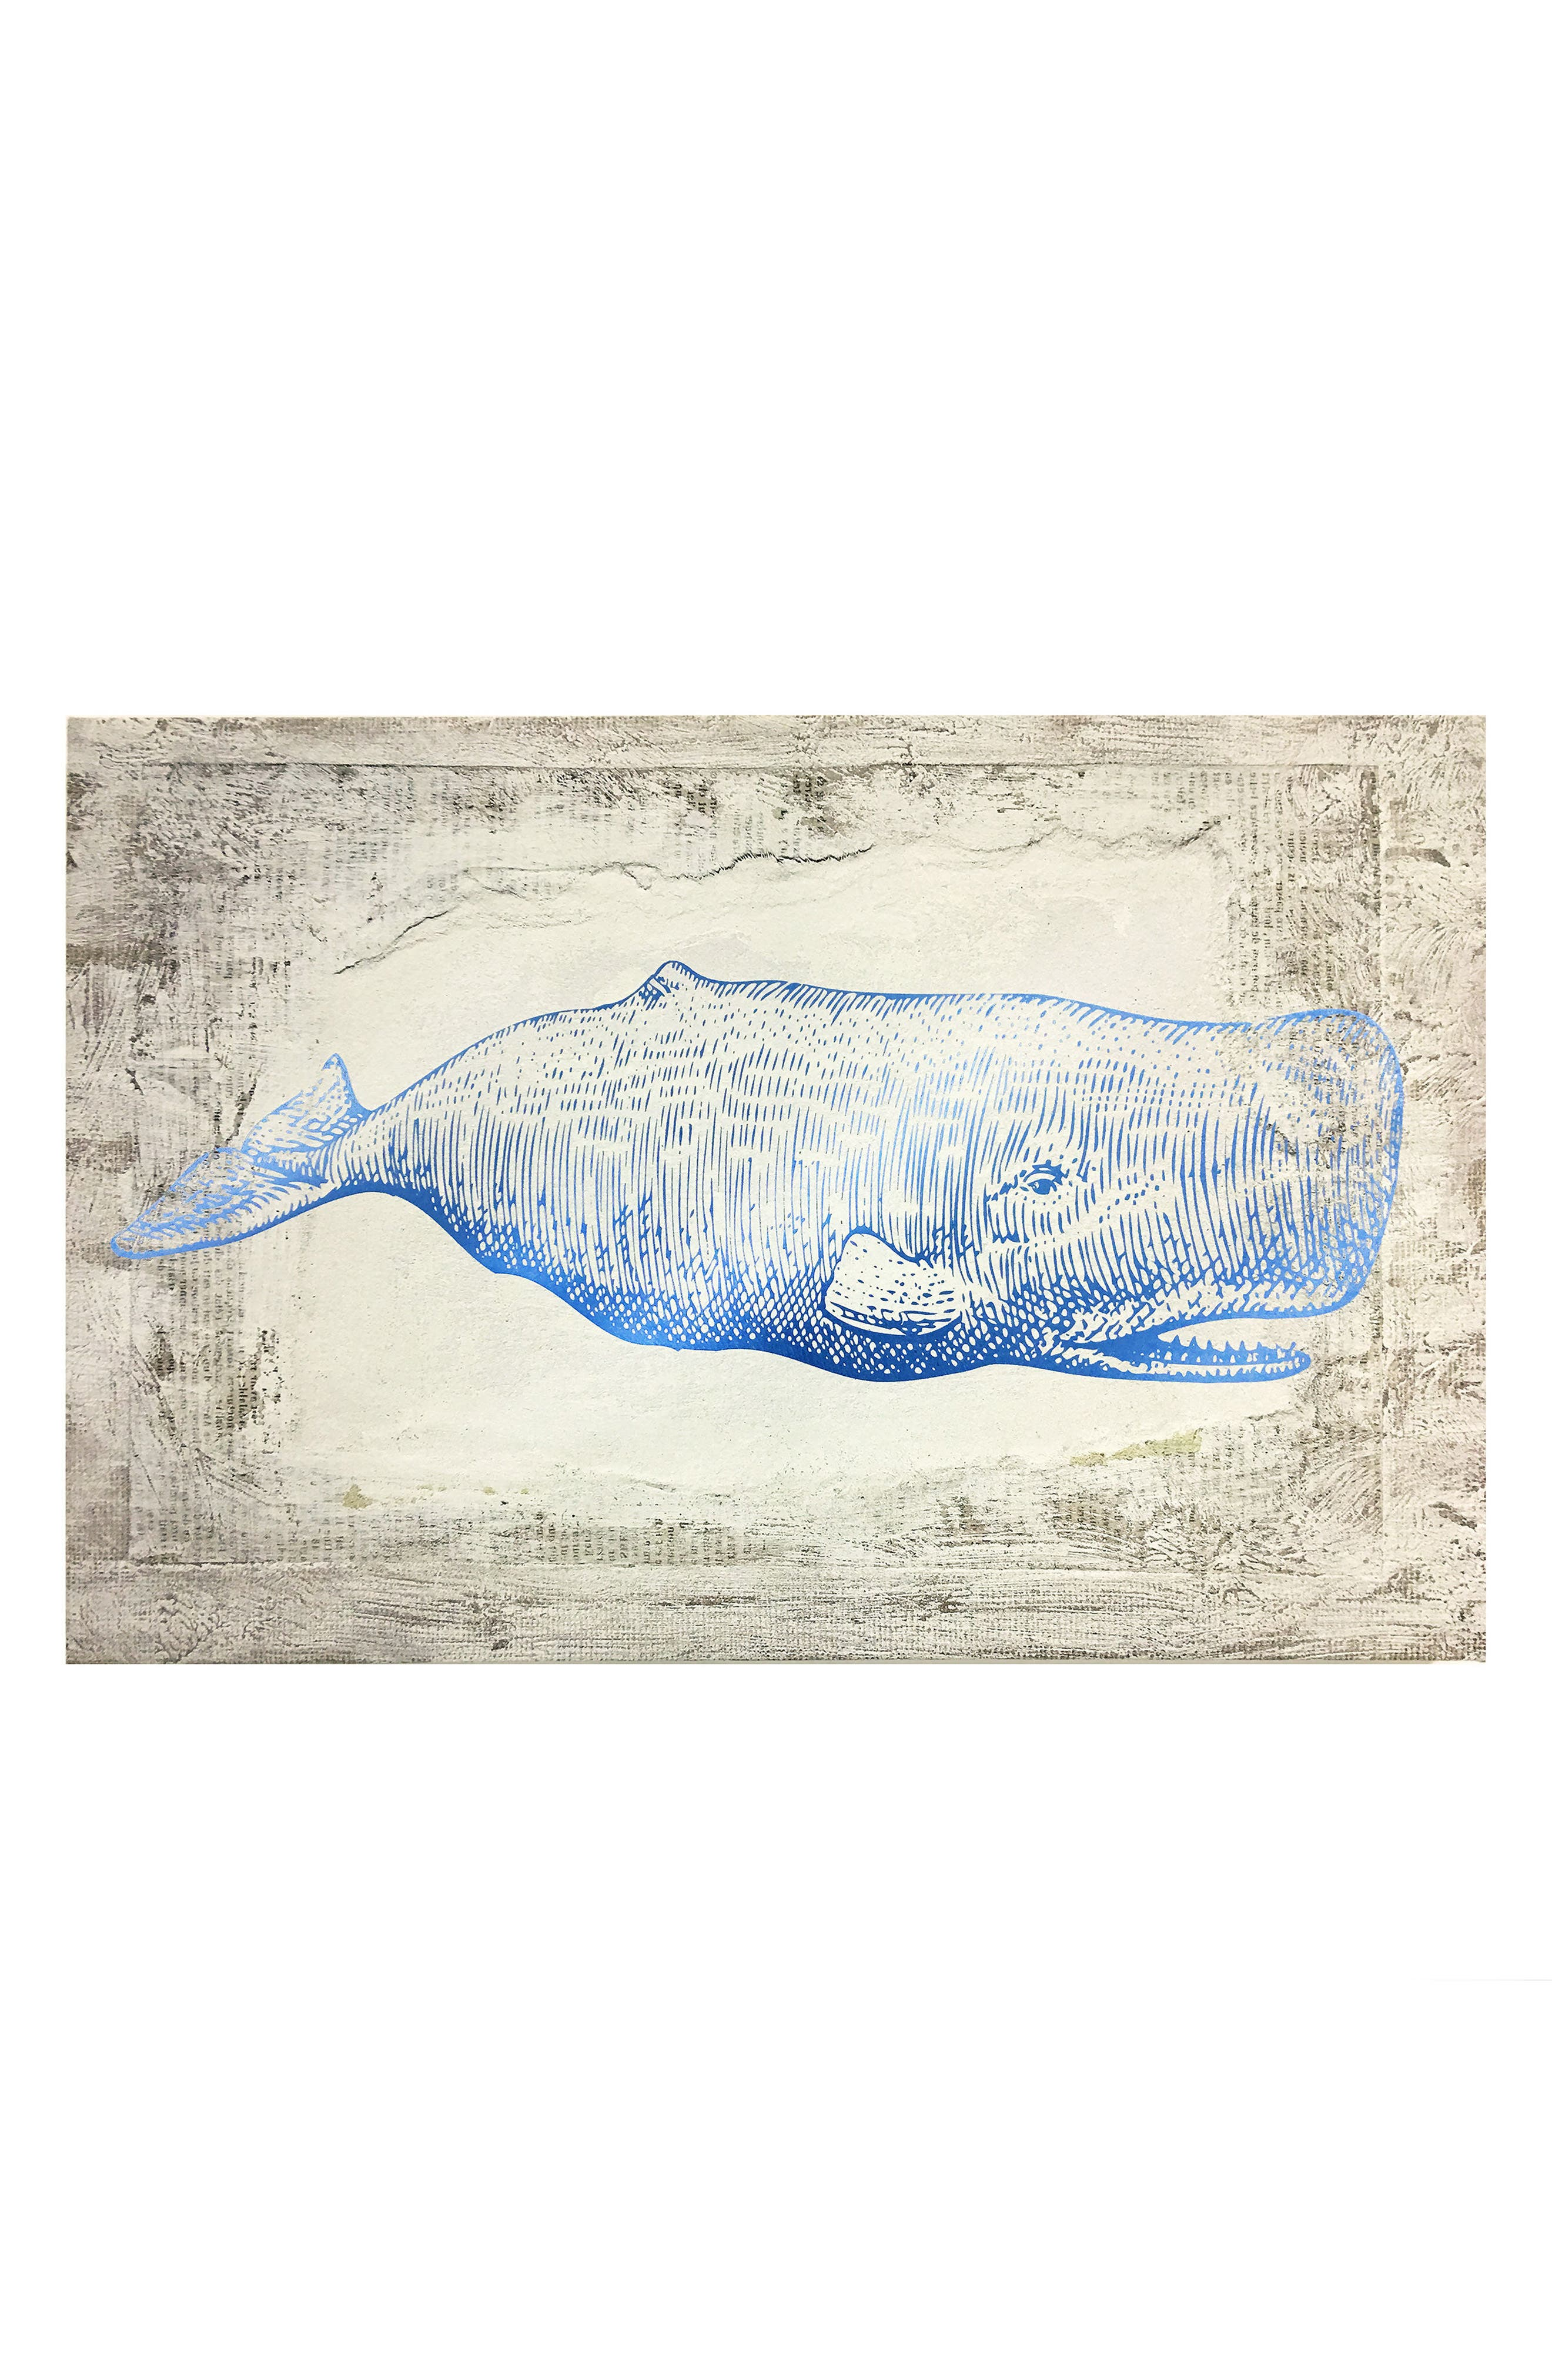 Main Image - Wynwood Blue Whale Canvas Wall Art